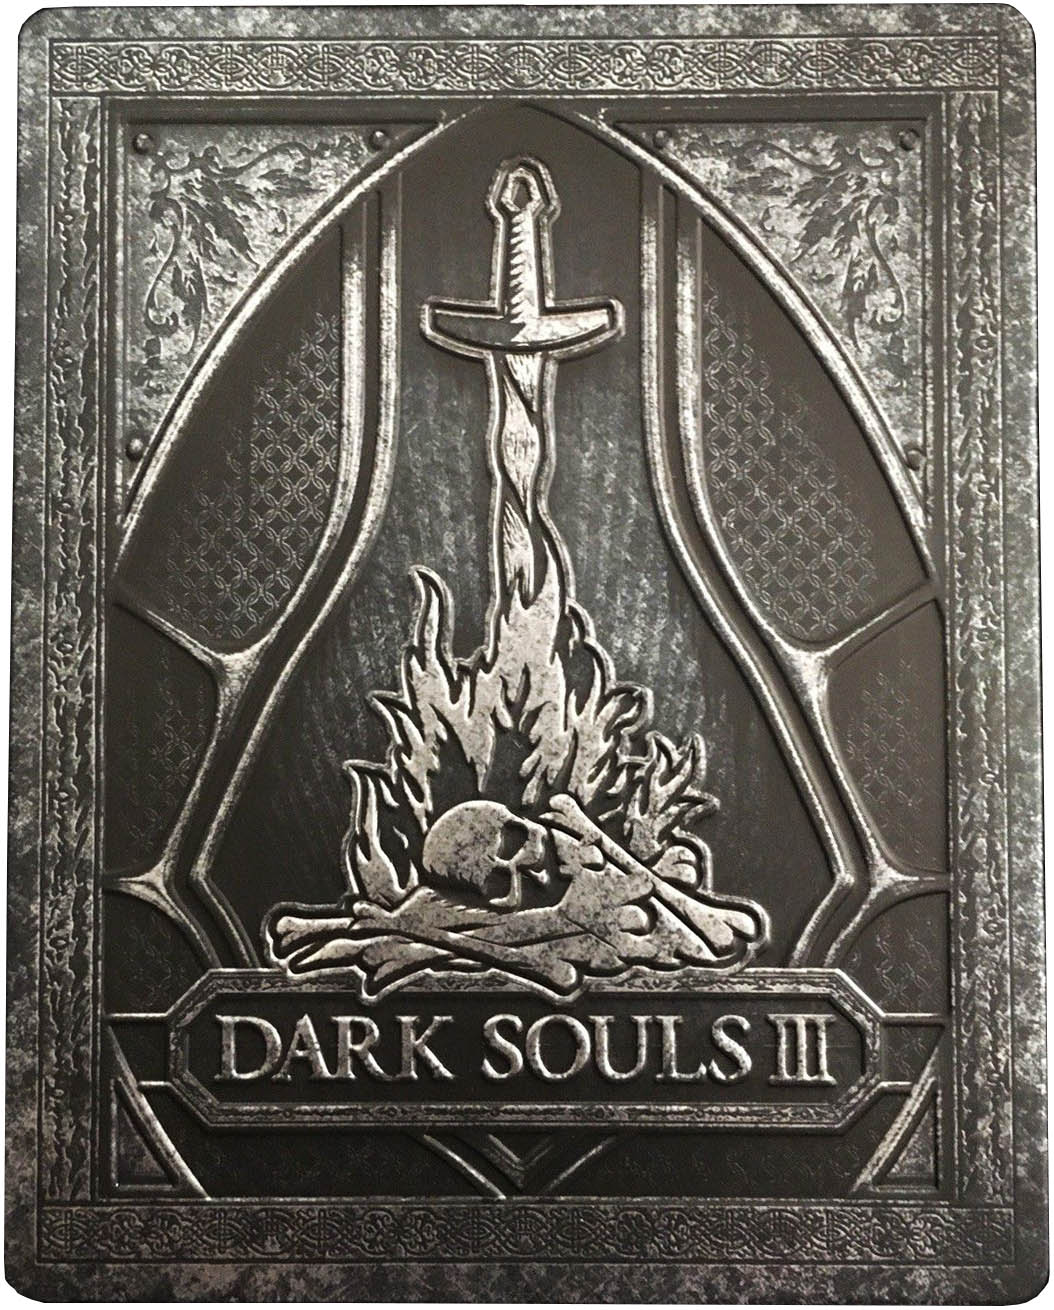 Dark Souls III Soundtracks